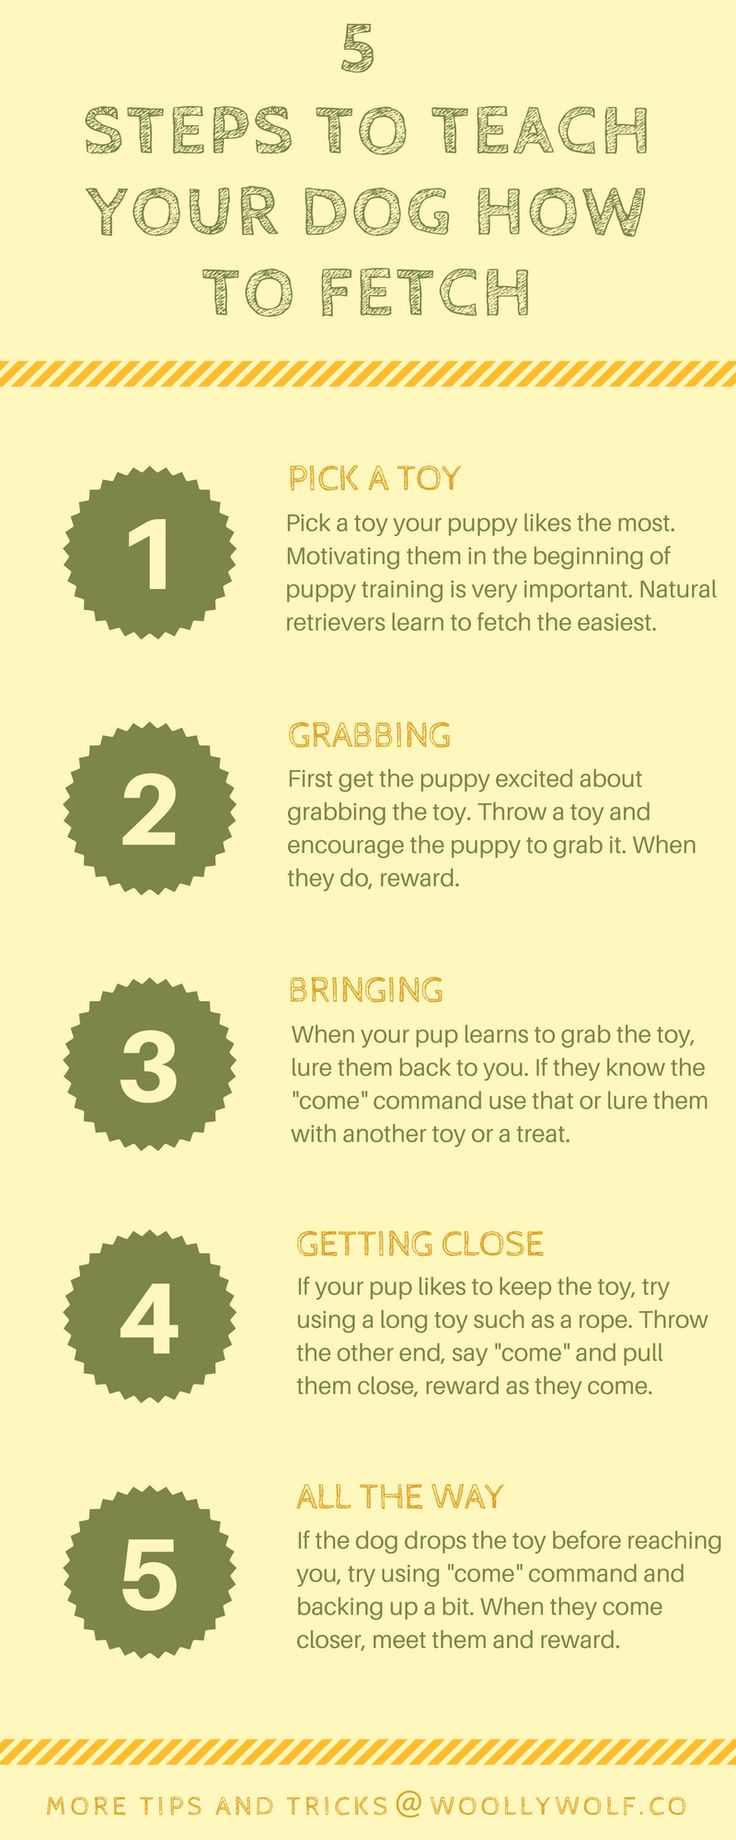 5 Steps to Teach Your puppy how to fetch. Play with dog, fun puppy ideas. Dog training ideas.